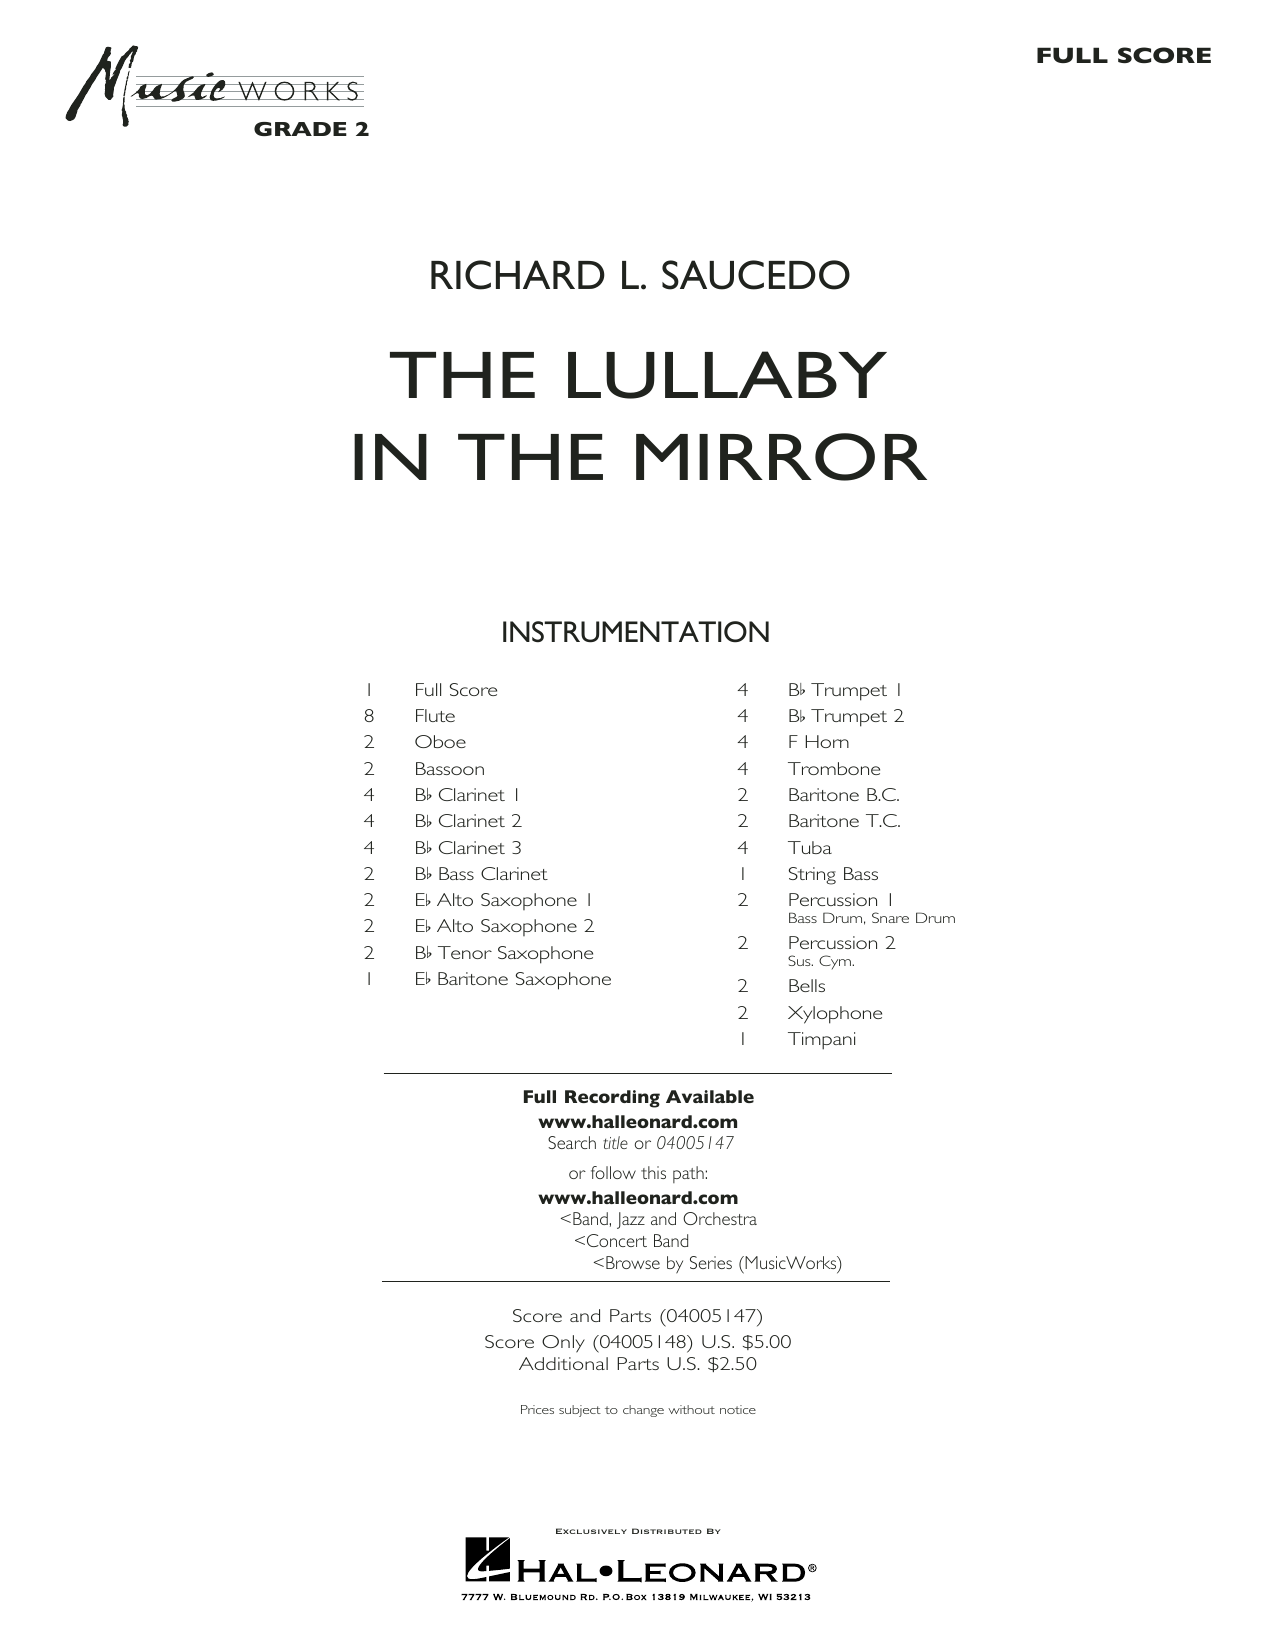 Richard L. Saucedo The Lullaby in the Mirror - Full Score sheet music notes and chords. Download Printable PDF.